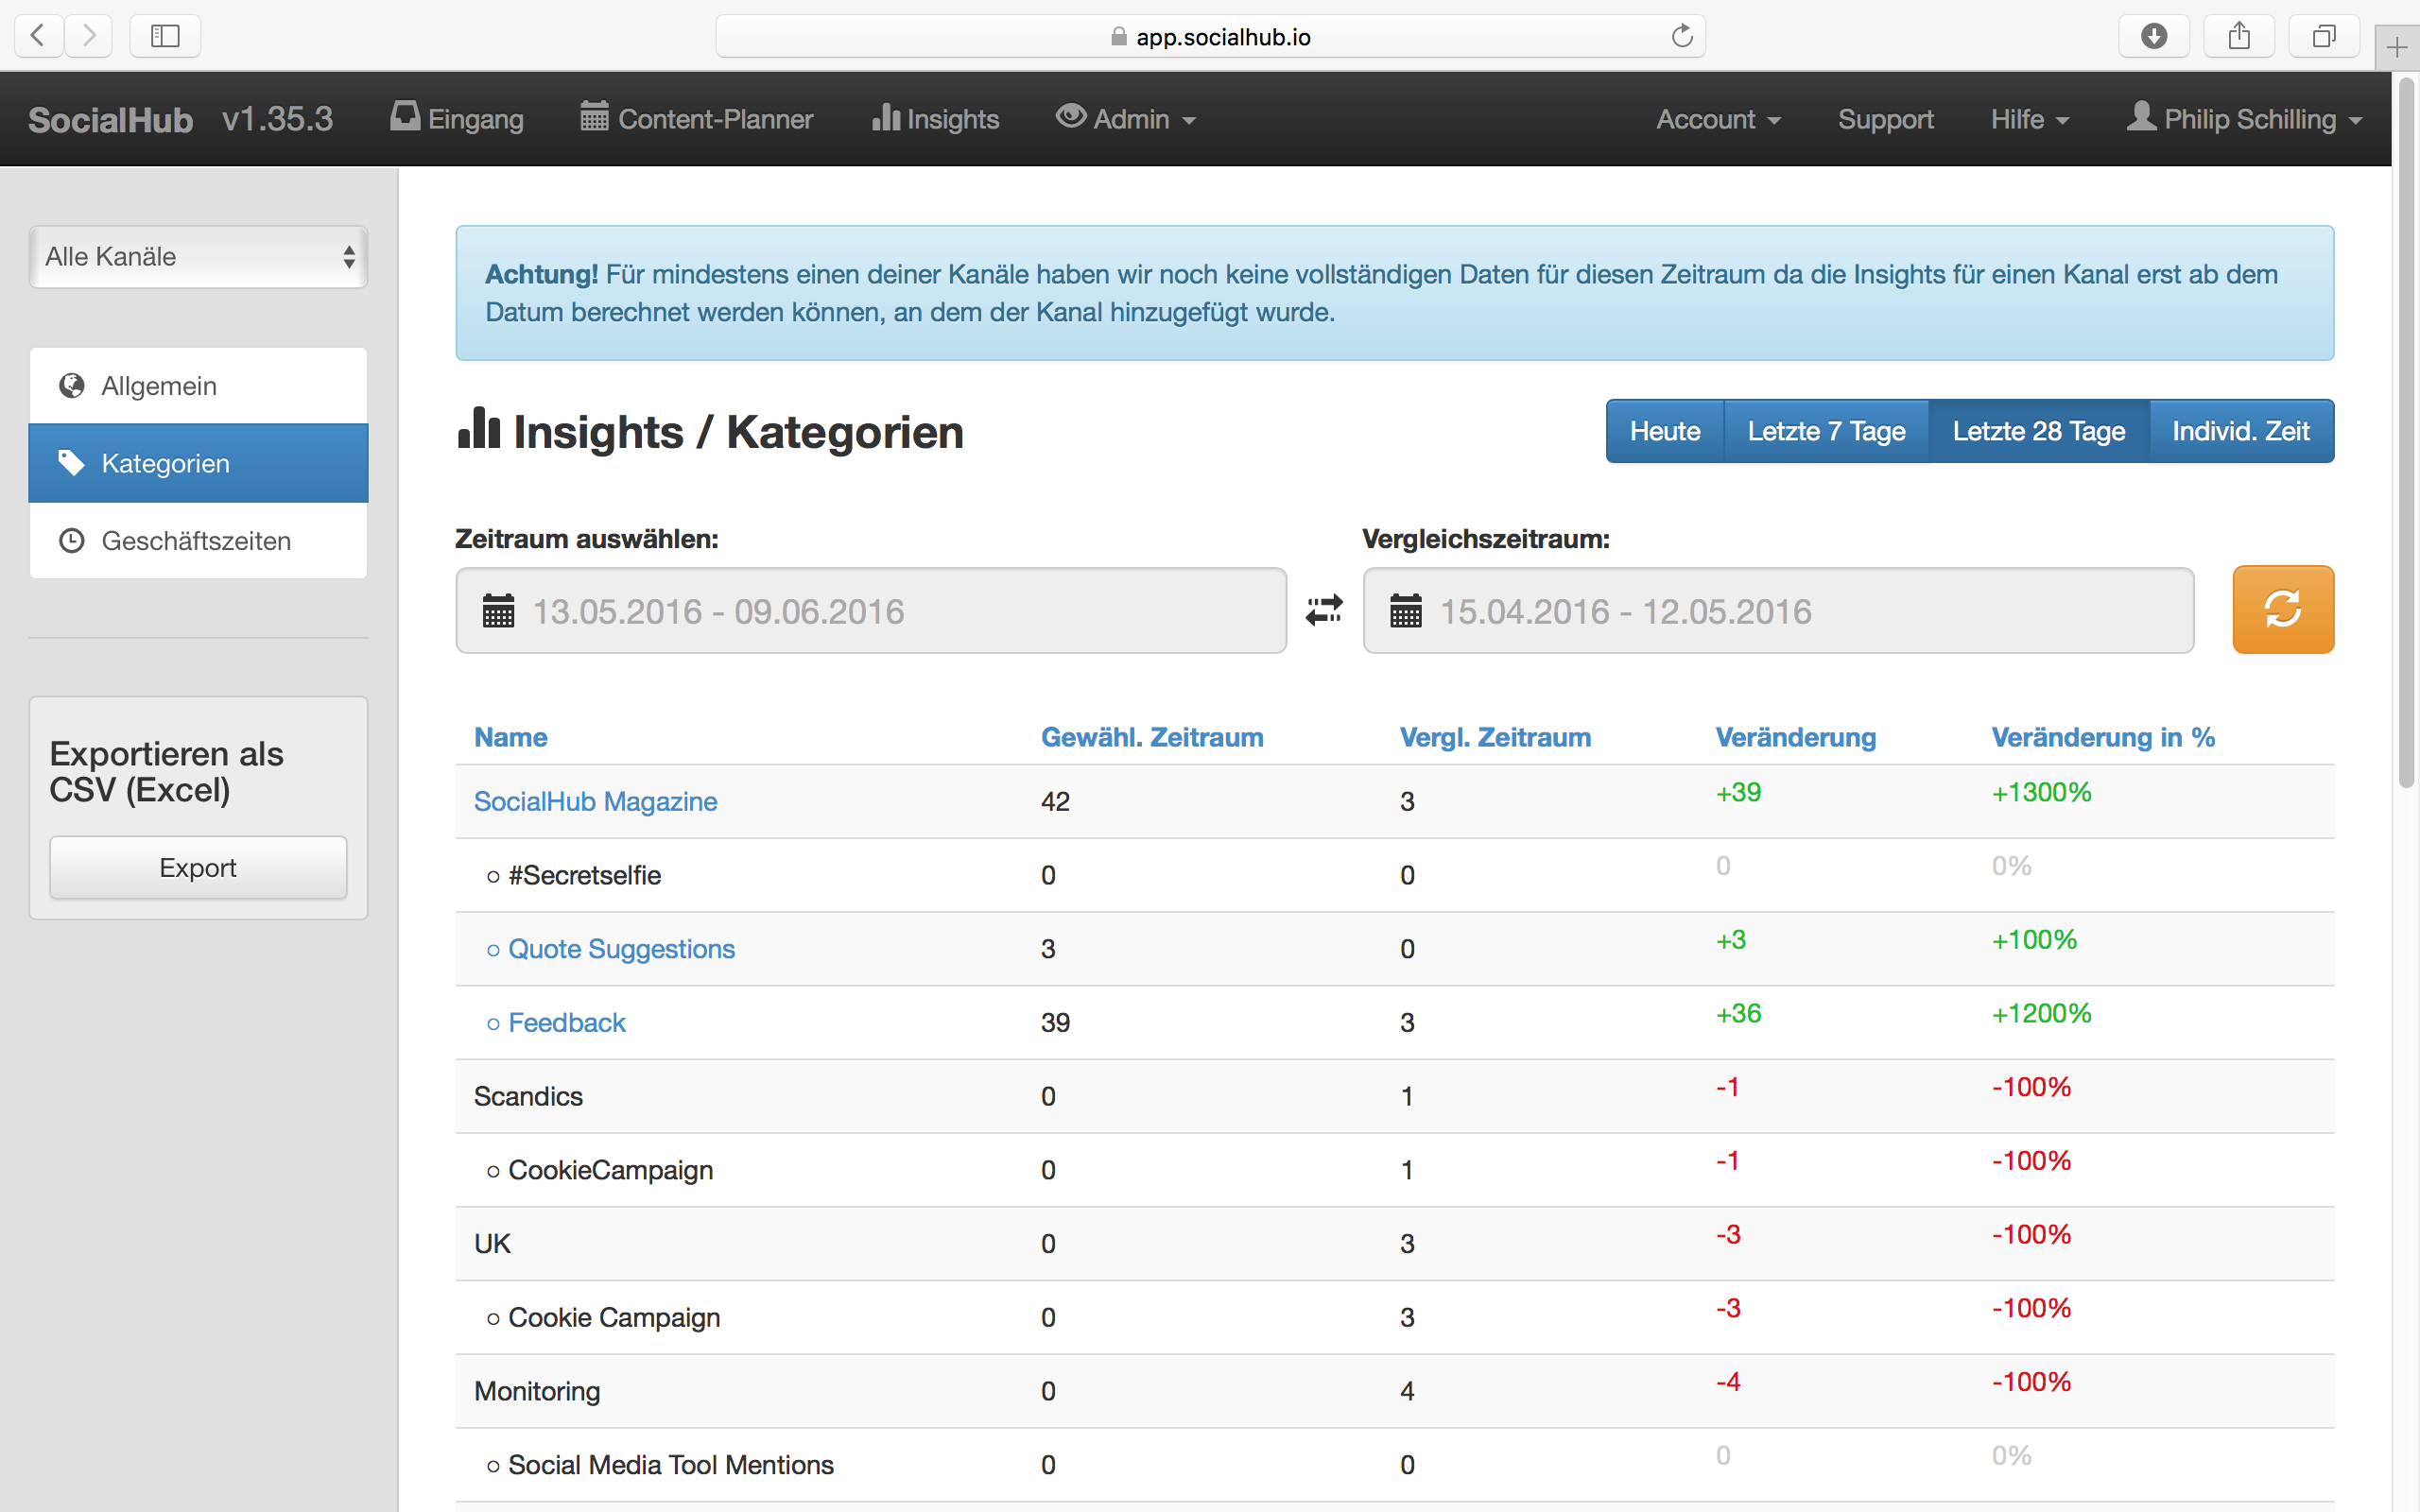 Social Media Insights Kategorien